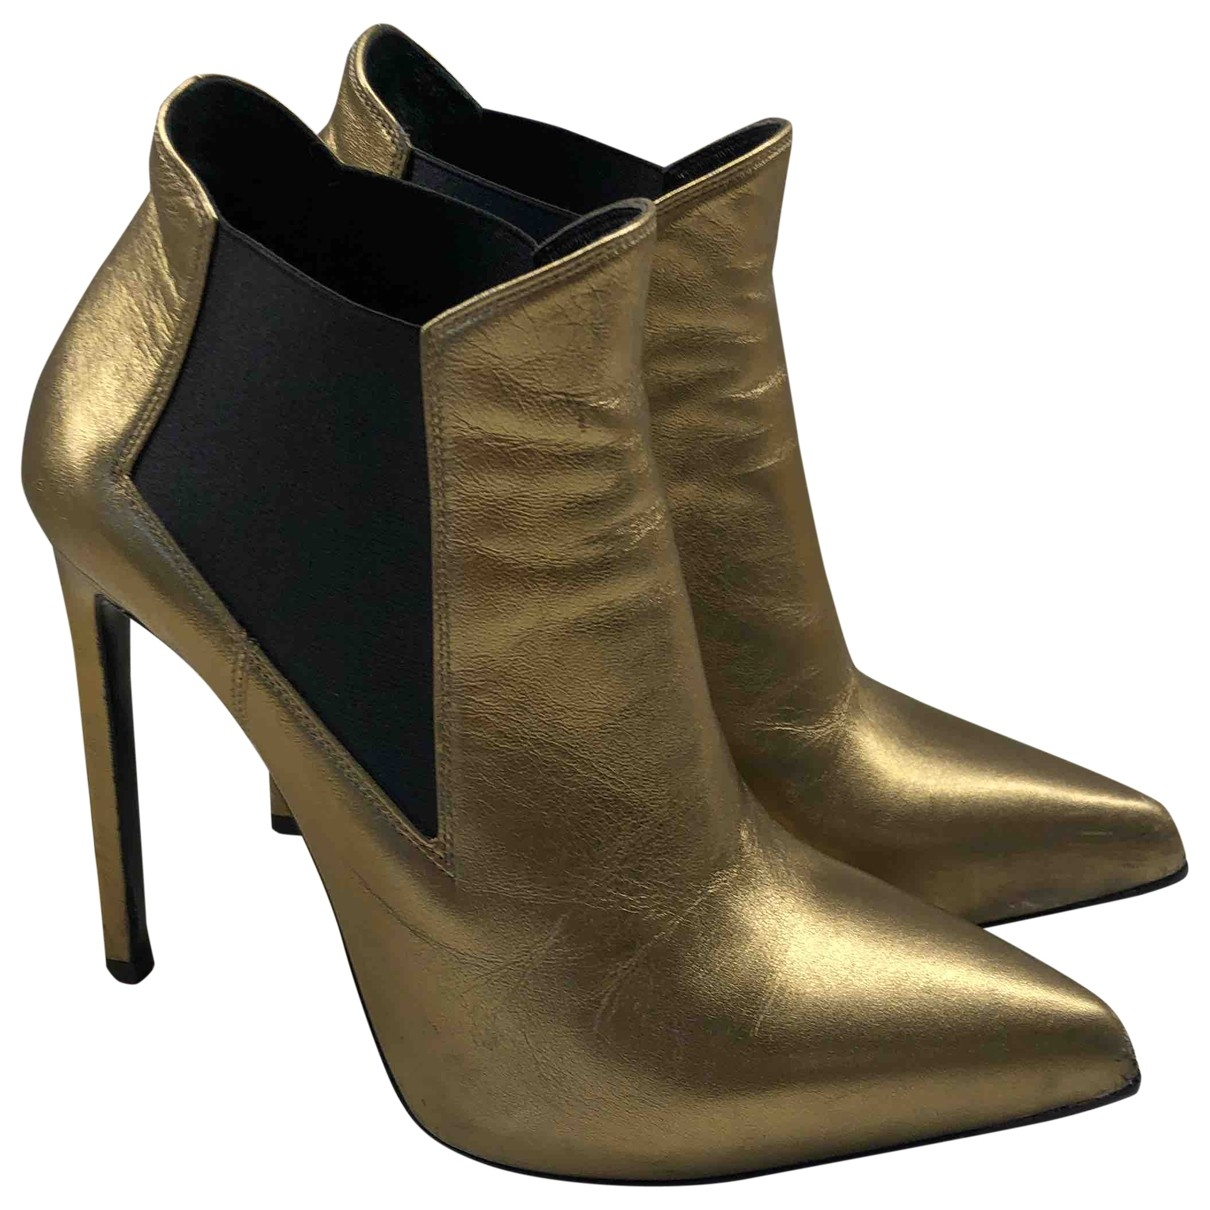 Saint Laurent \N Metallic Leather Ankle boots for Women 36 EU